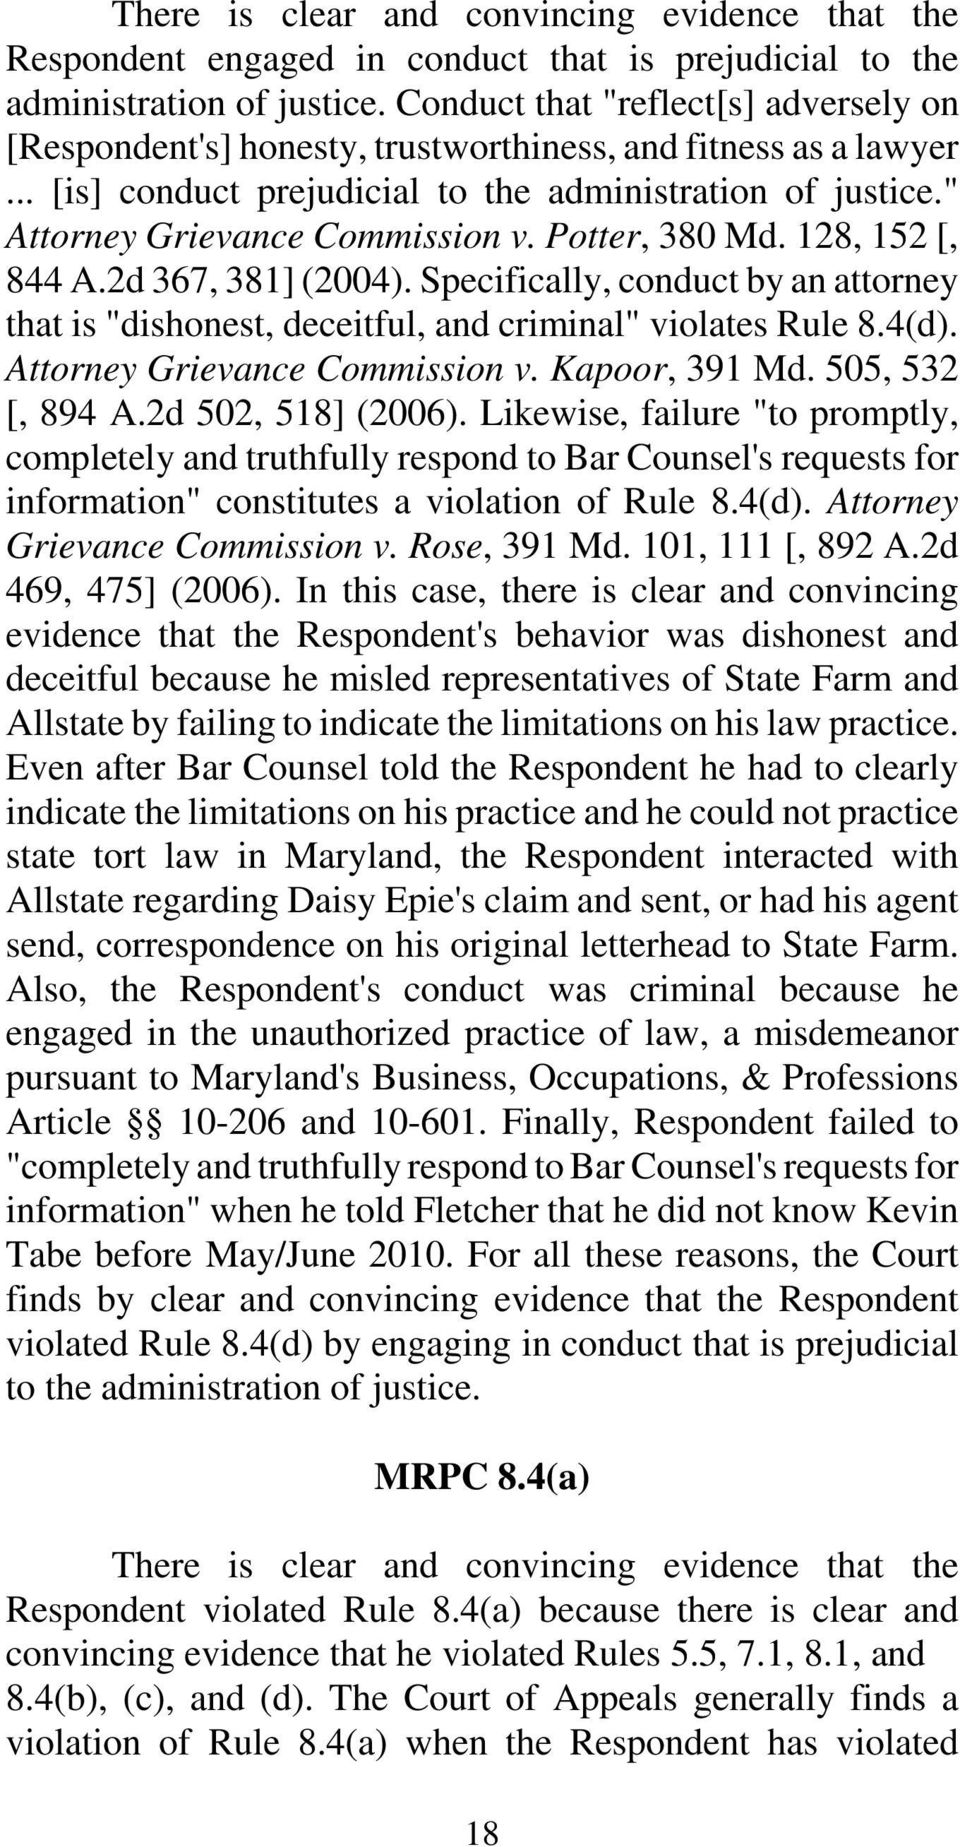 "Potter, 380 Md. 128, 152 [, 844 A.2d 367, 381] (2004). Specifically, conduct by an attorney that is ""dishonest, deceitful, and criminal"" violates Rule 8.4(d). Attorney Grievance Commission v."